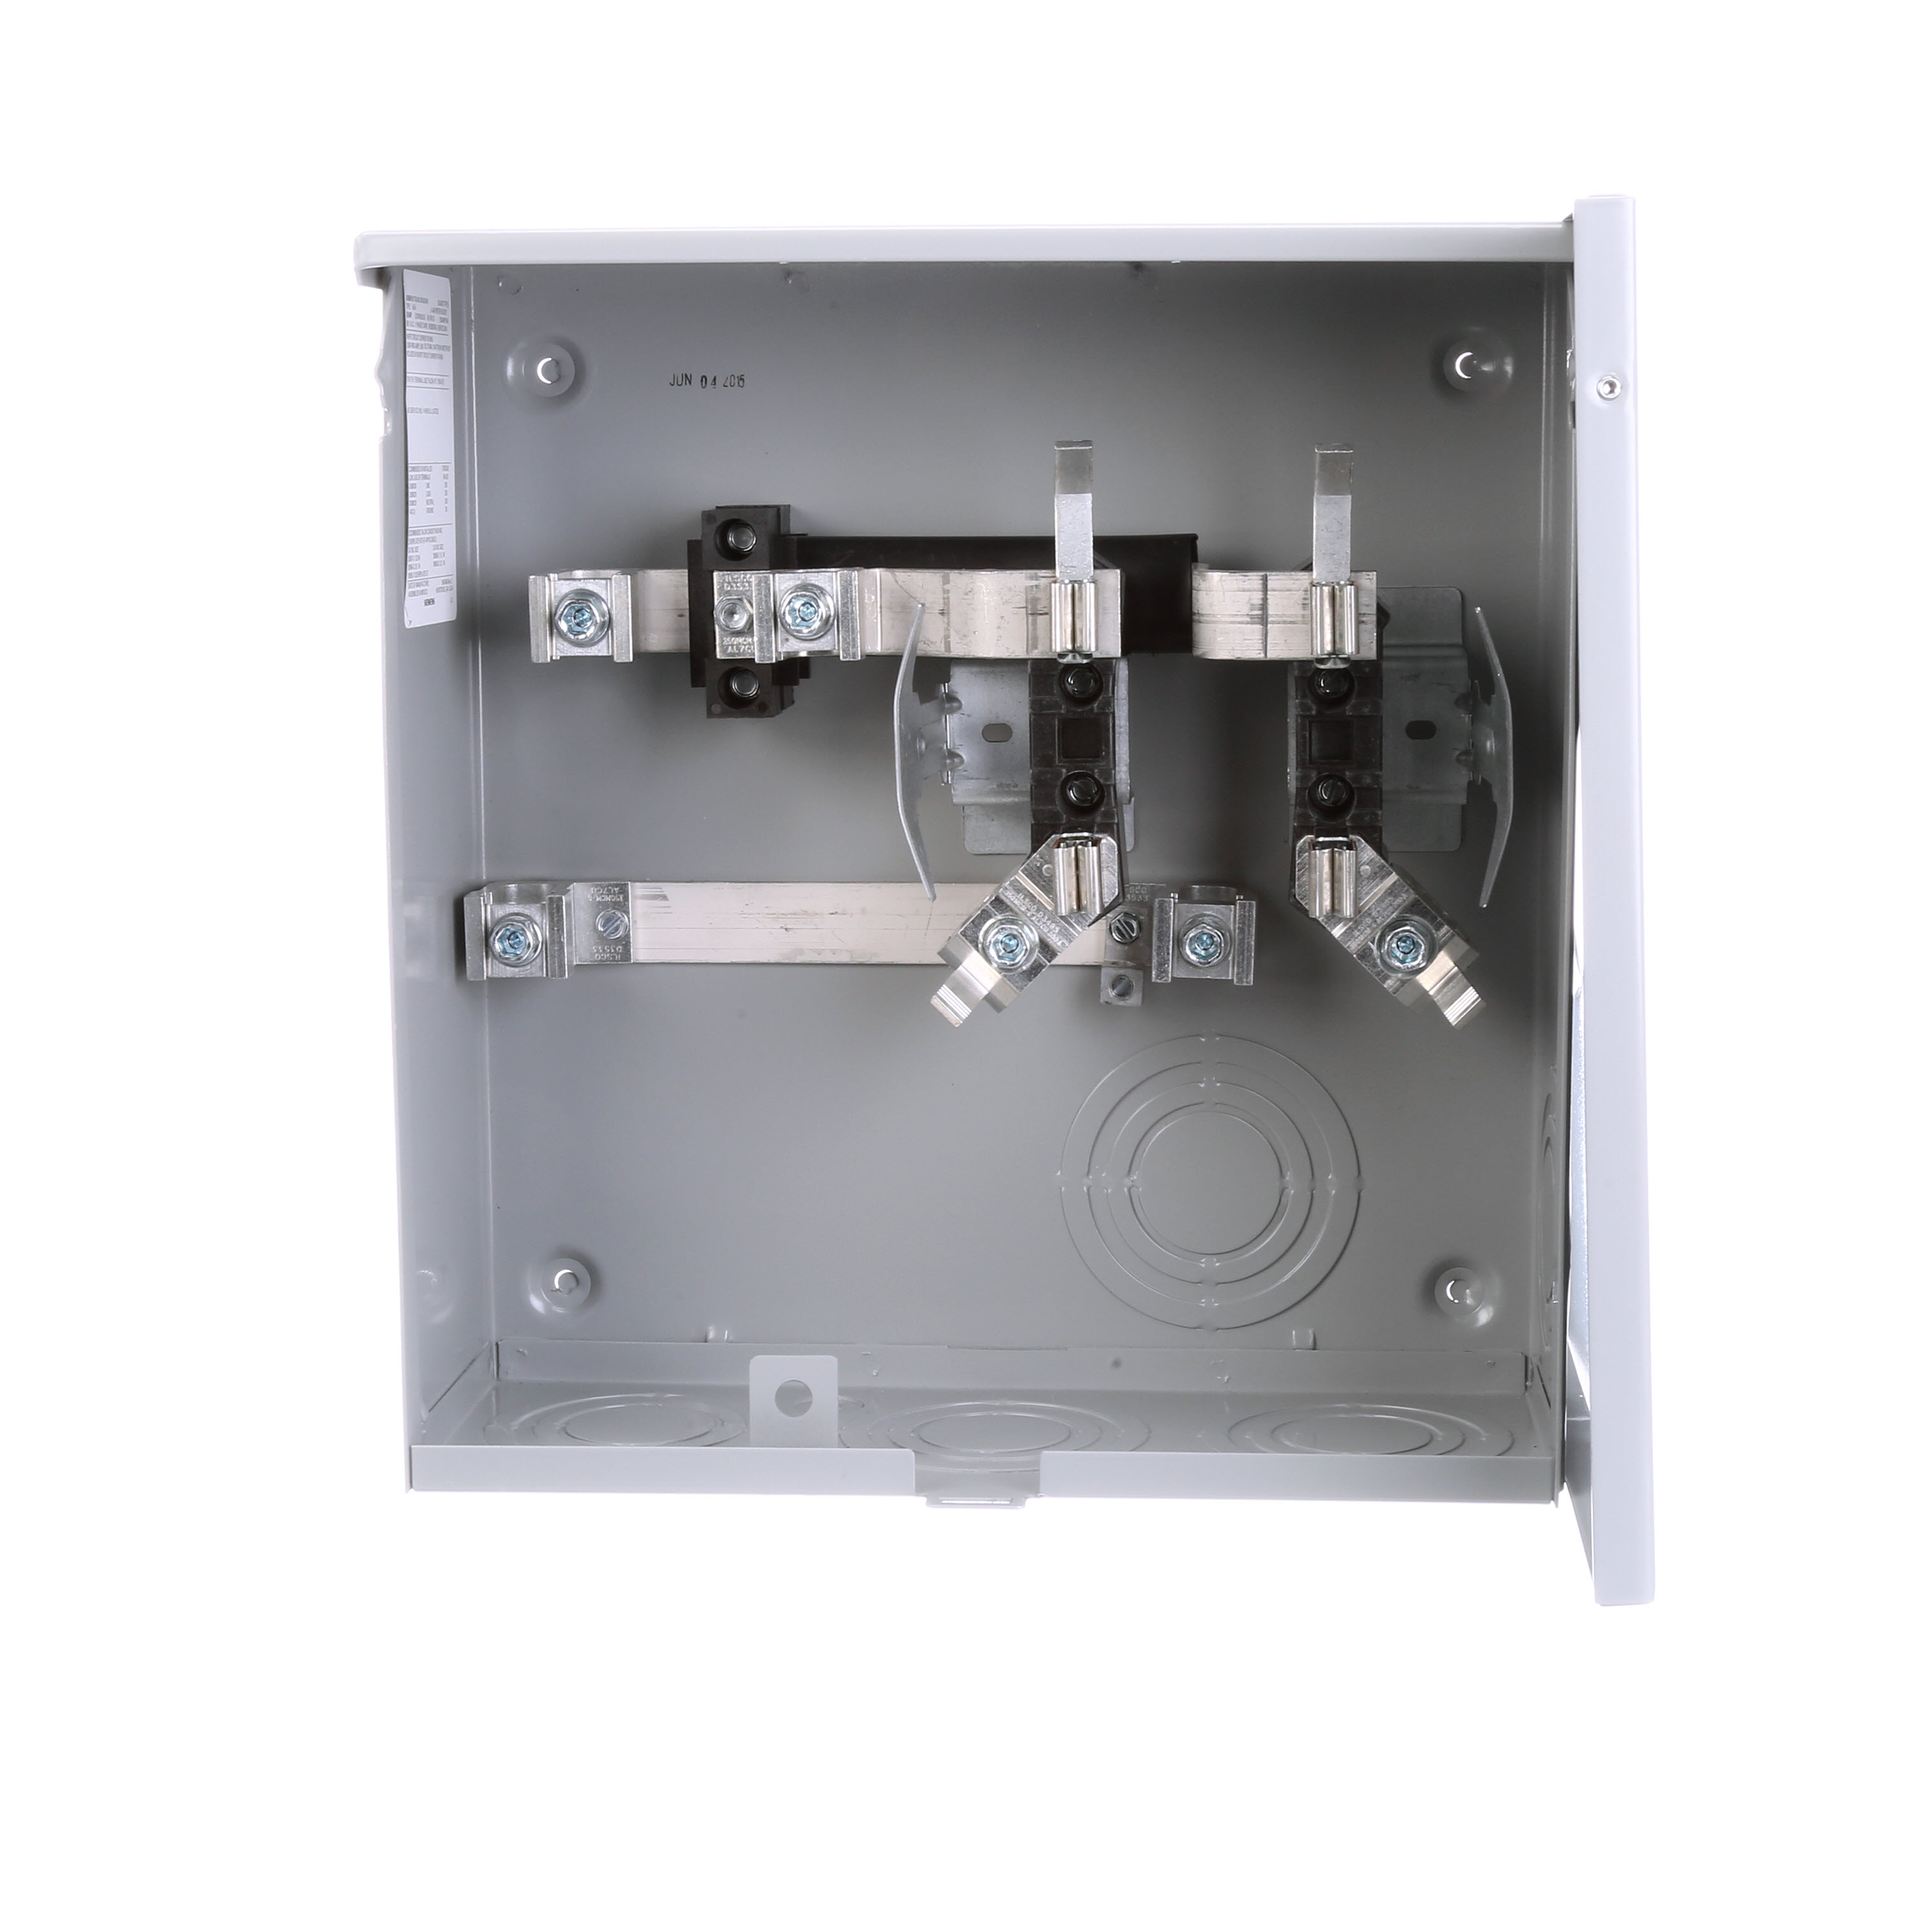 5 jaw meter socket wiring diagram typical light switch siemens suas877 ppza mcnaughton mckay